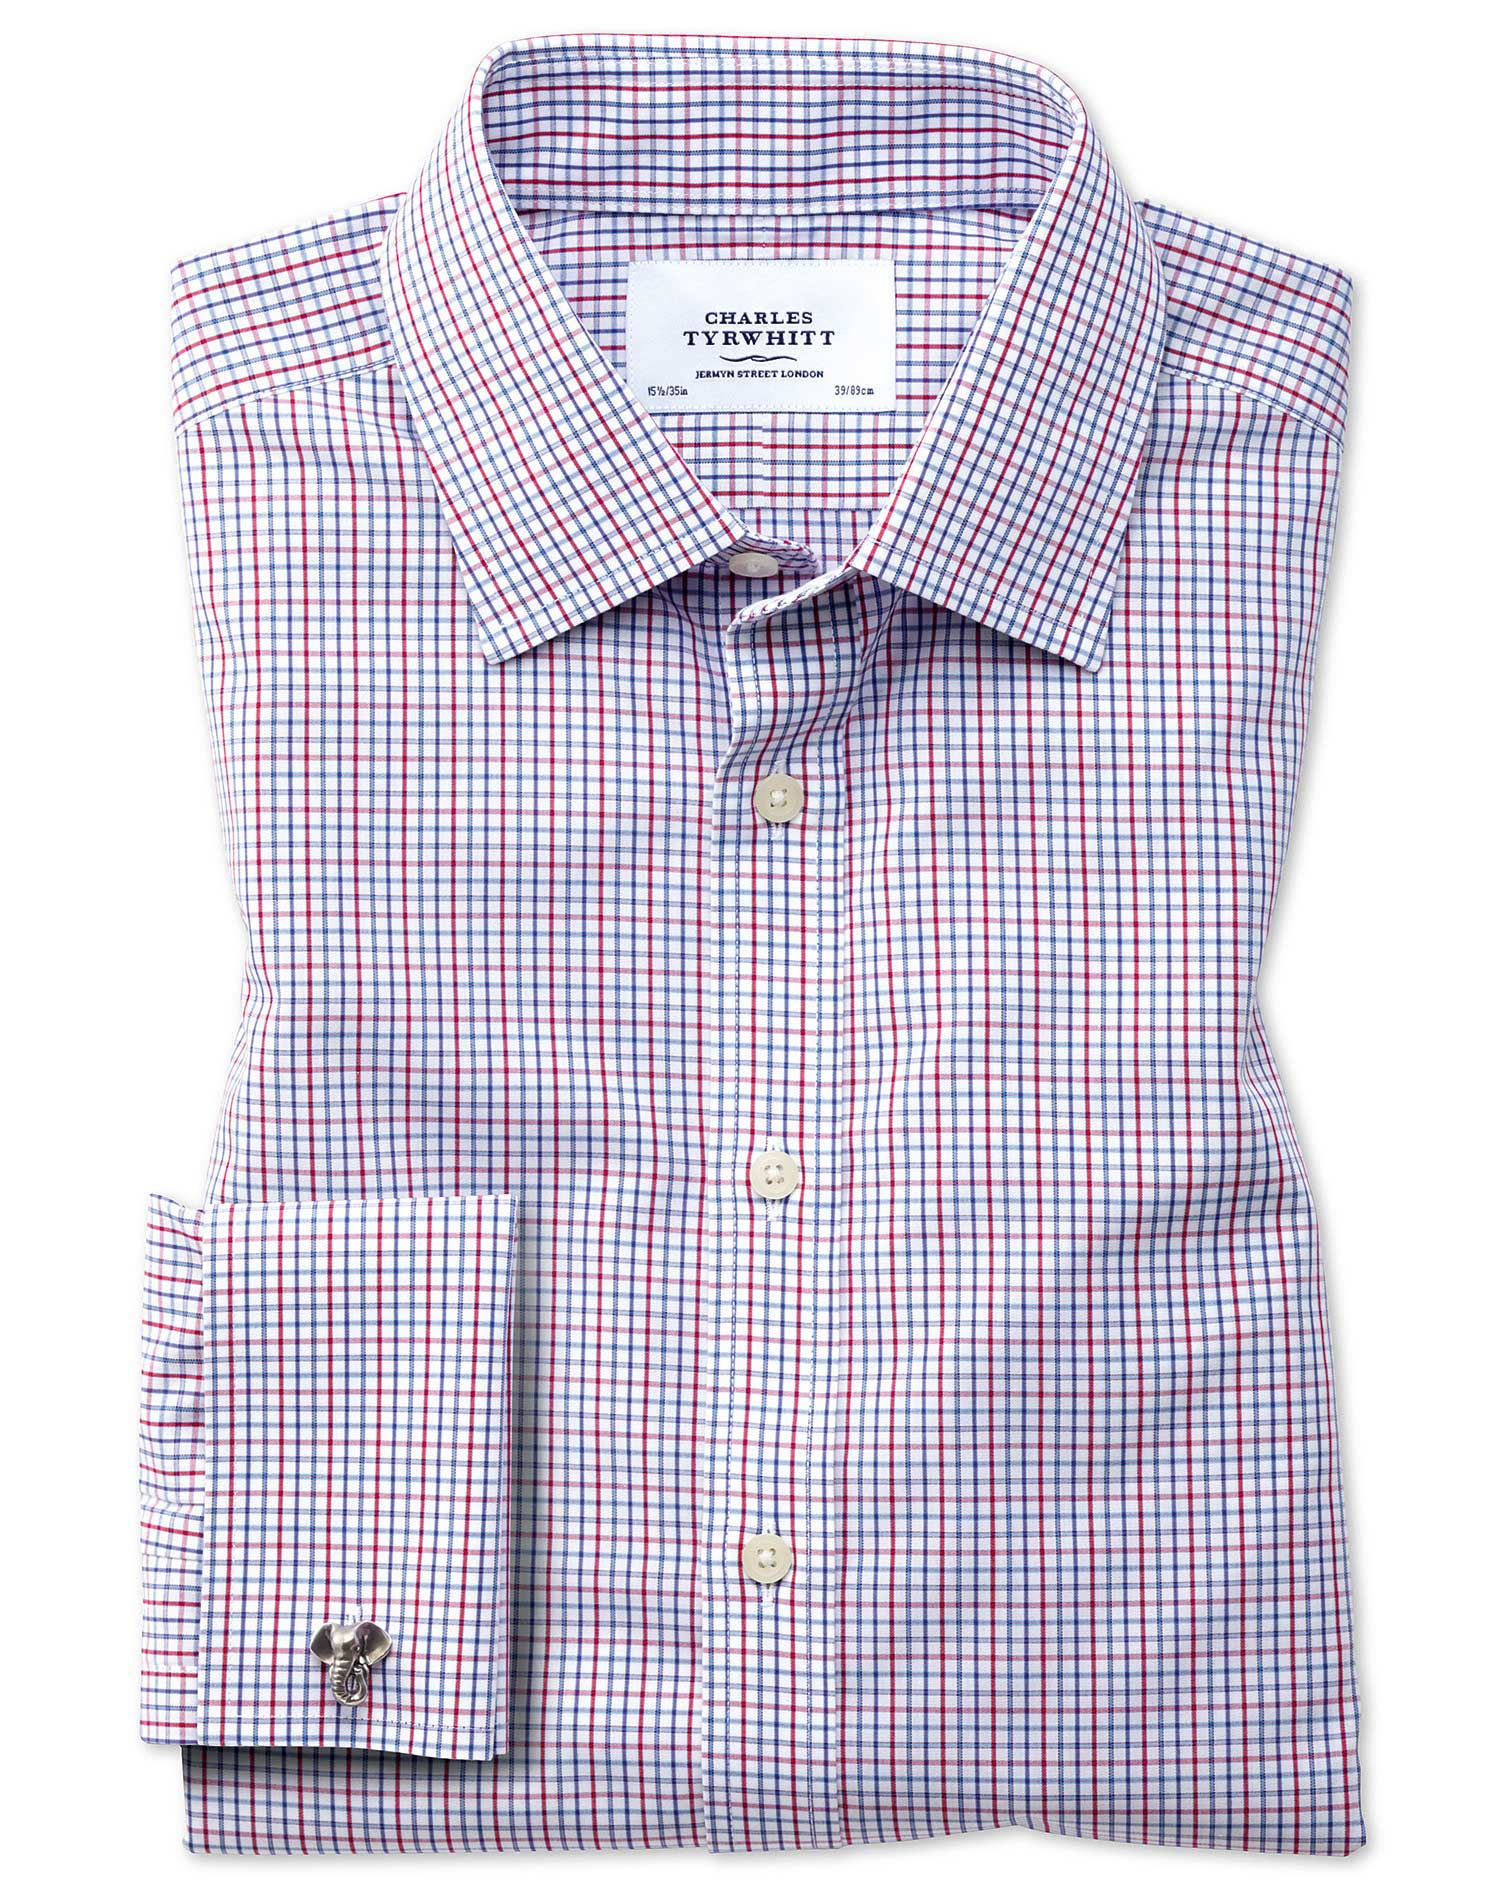 Extra Slim Fit Non-Iron Multi Grid Check Cotton Formal Shirt Single Cuff Size 17/35 by Charles Tyrwh